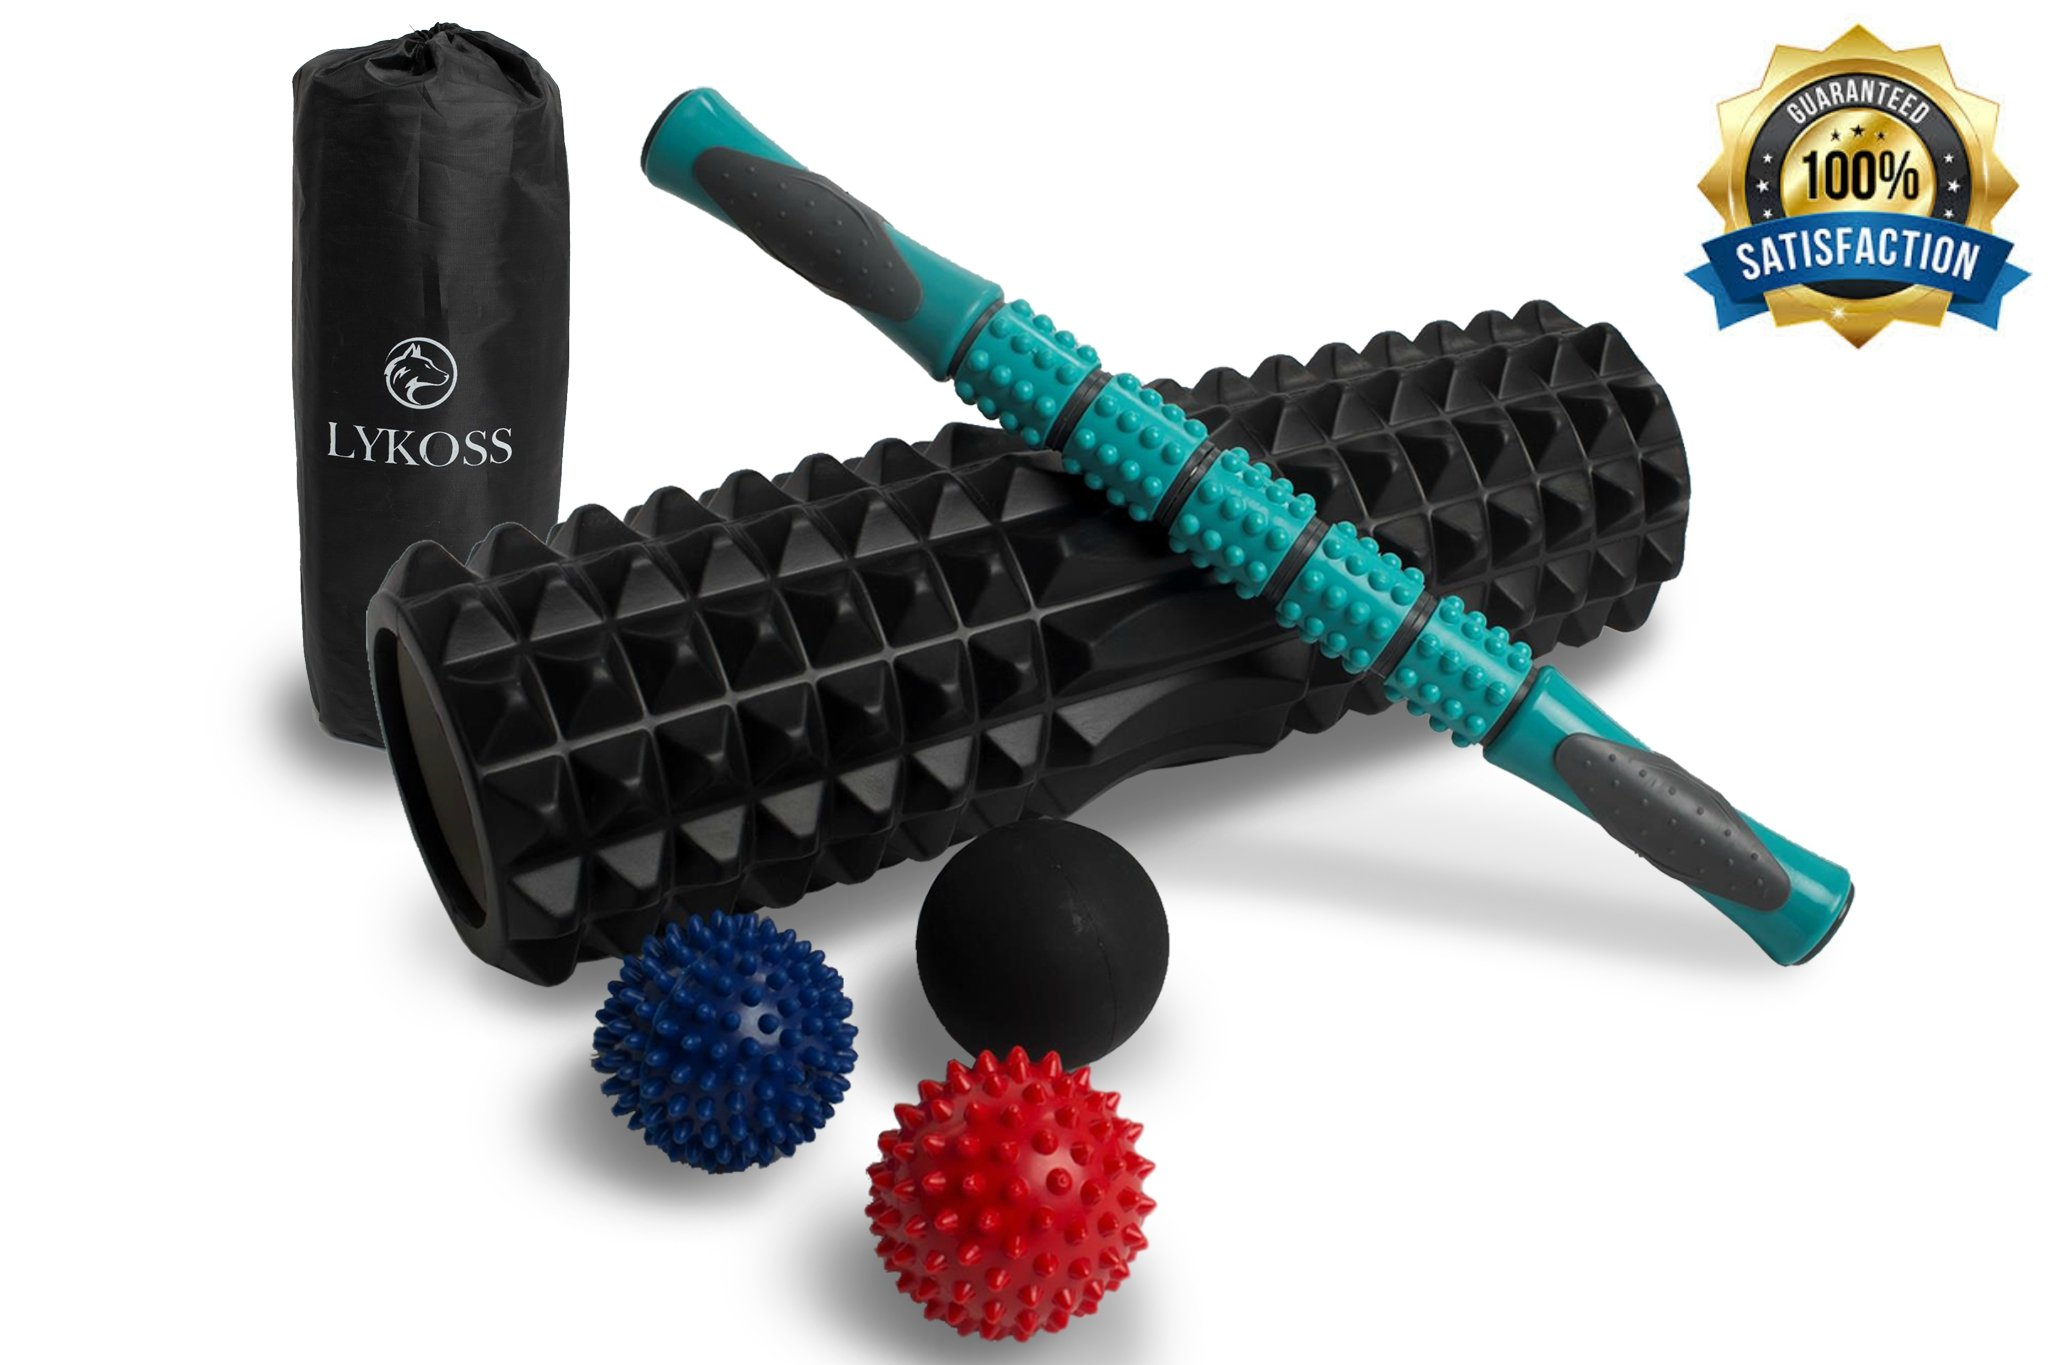 Lykoss 7-In-1 18'' X-Large High Density Foam Roller Kit, Long Muscle Roller Stick, 3 Type Massage Balls, XL Bag by Set For Trigger Point, Yoga Myofascial Release, Deep Tissue, Back Physical Therapy